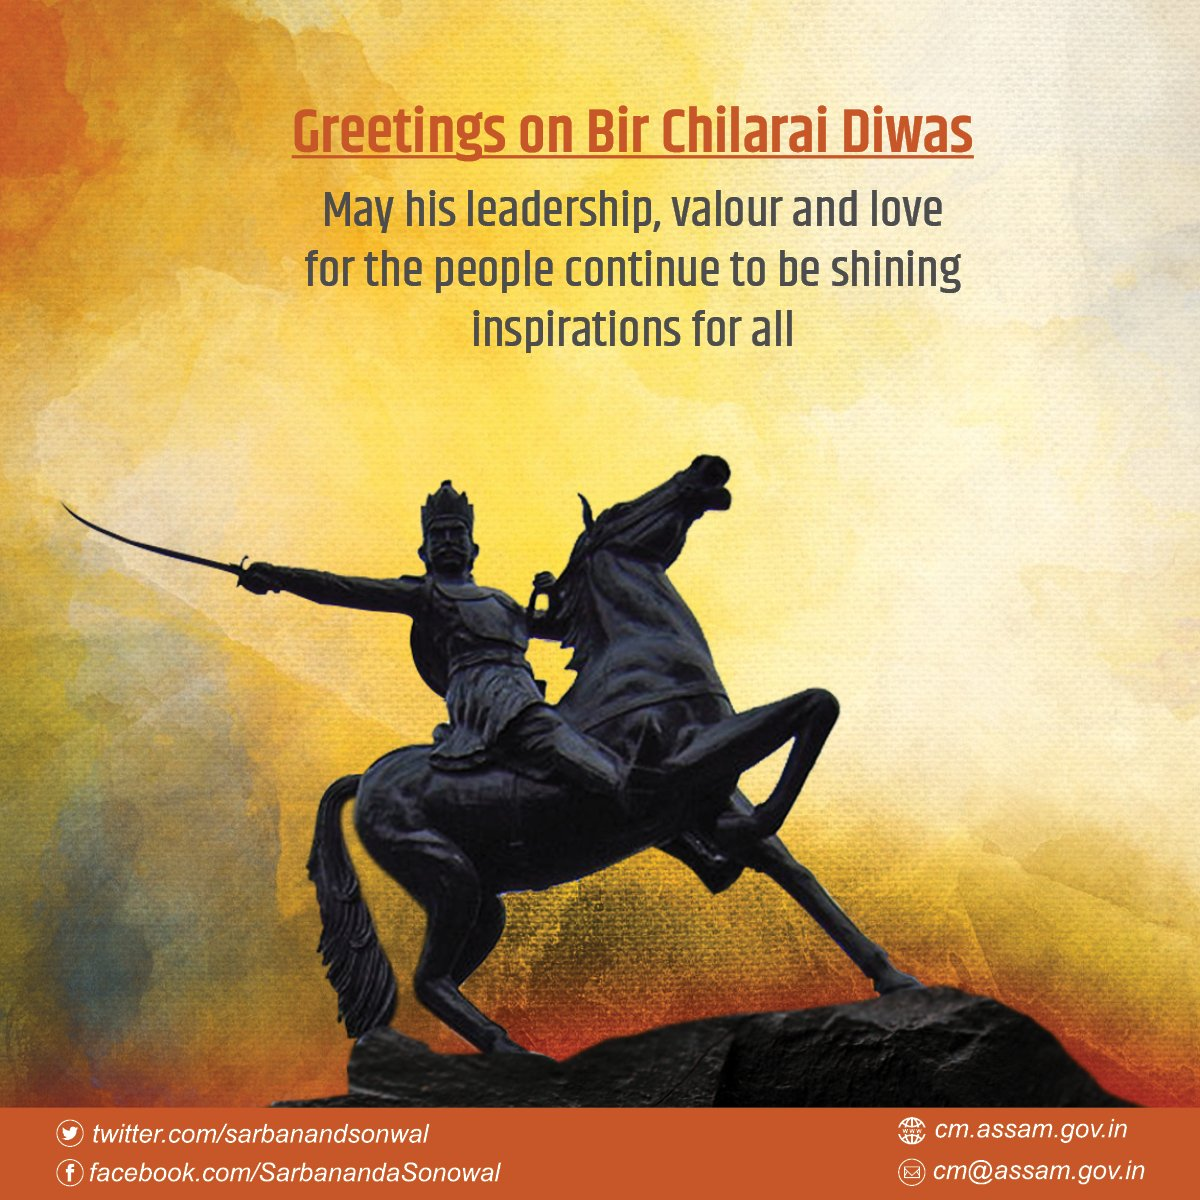 Tributes to Bir Chilarai on his birth anniversary. The legendary warrior and hero of the Koch kingdom remains a glorious chapter in our rich history.